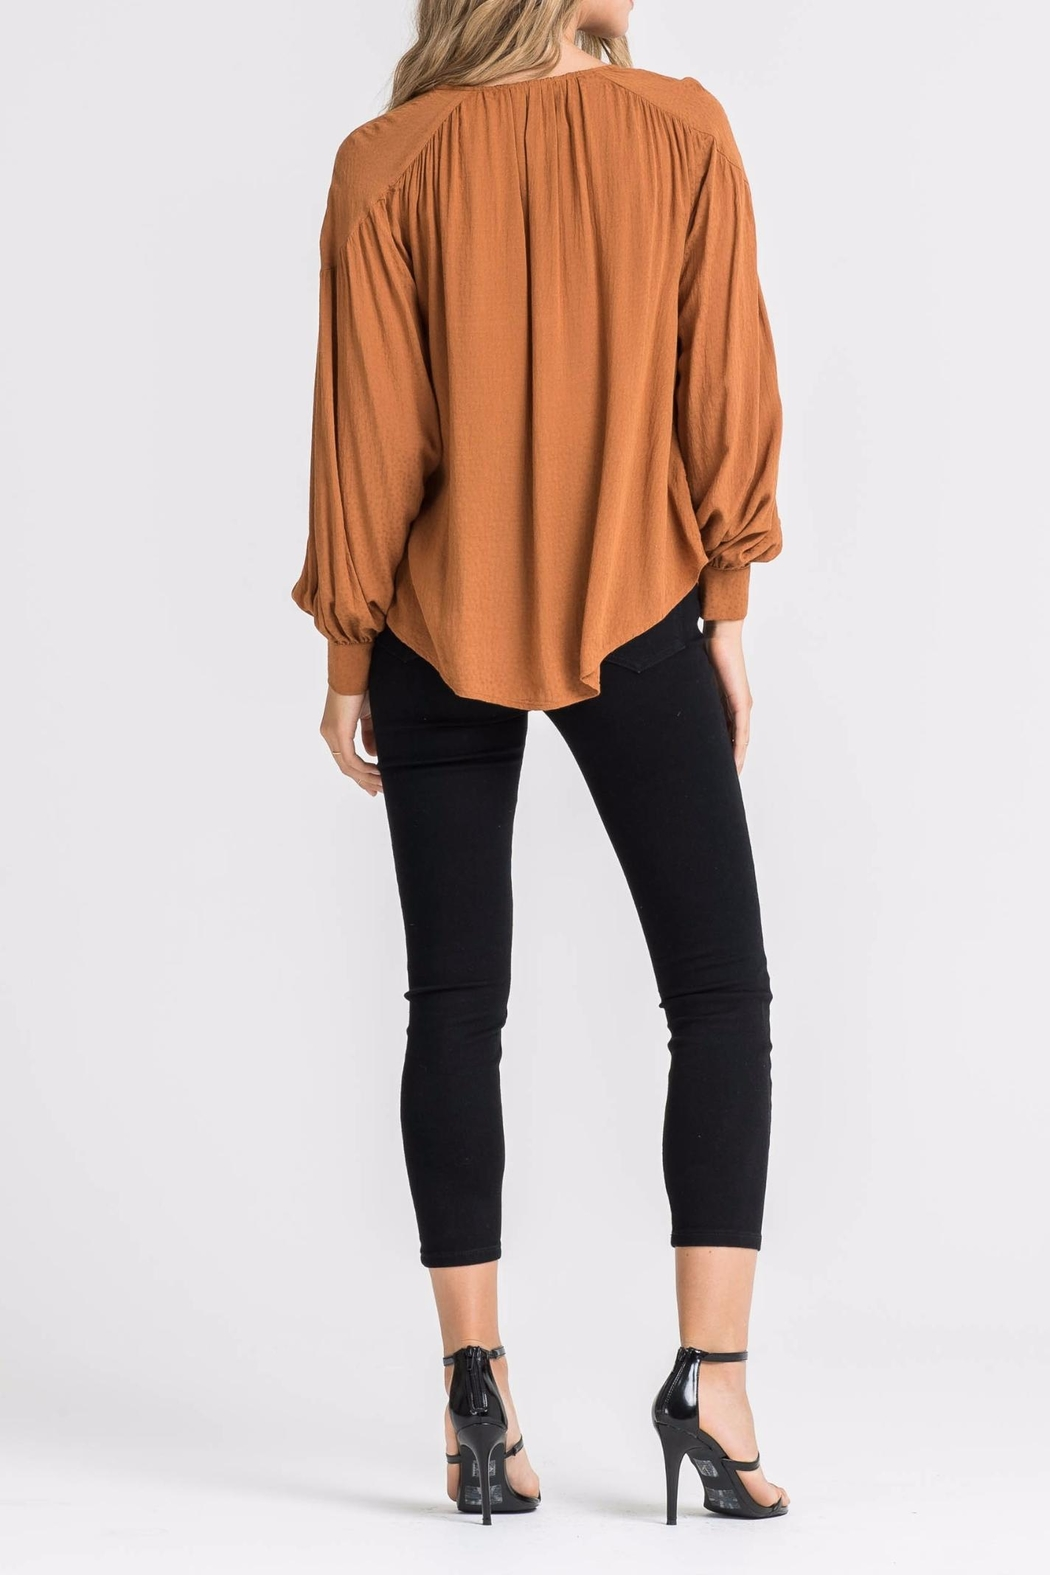 Lush Kira Blouse - Side Cropped Image